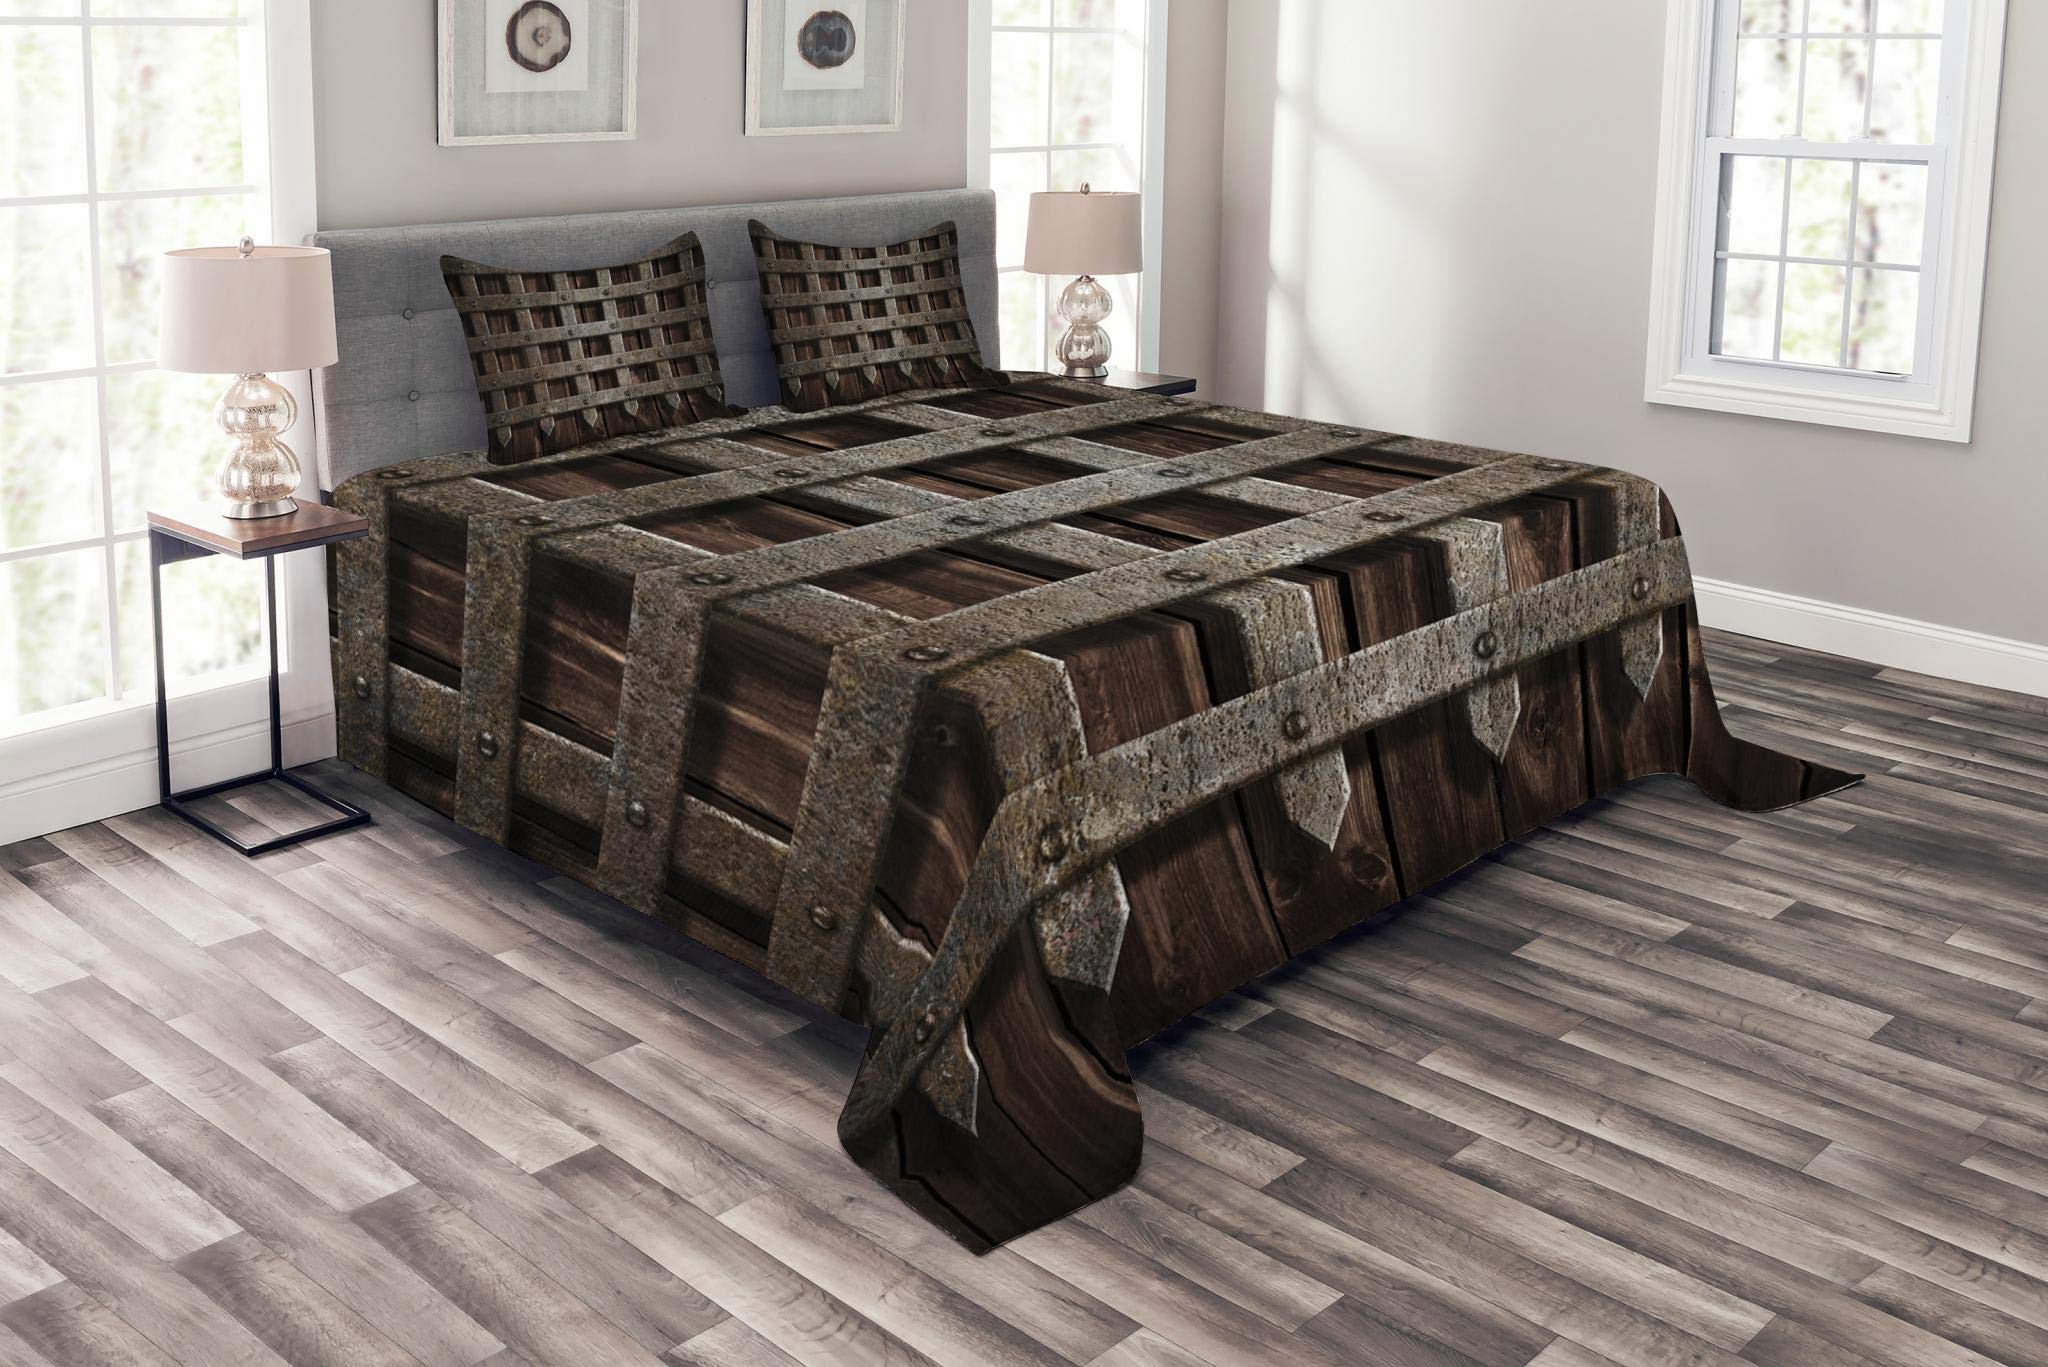 Lunarable Medieval Bedspread Set King Size, Medieval Wooden Castle Wall and Gate Greek Style Mid-Century Designed Artwork Print, Decorative Quilted 3 Piece Coverlet Set with 2 Pillow Shams, Grey